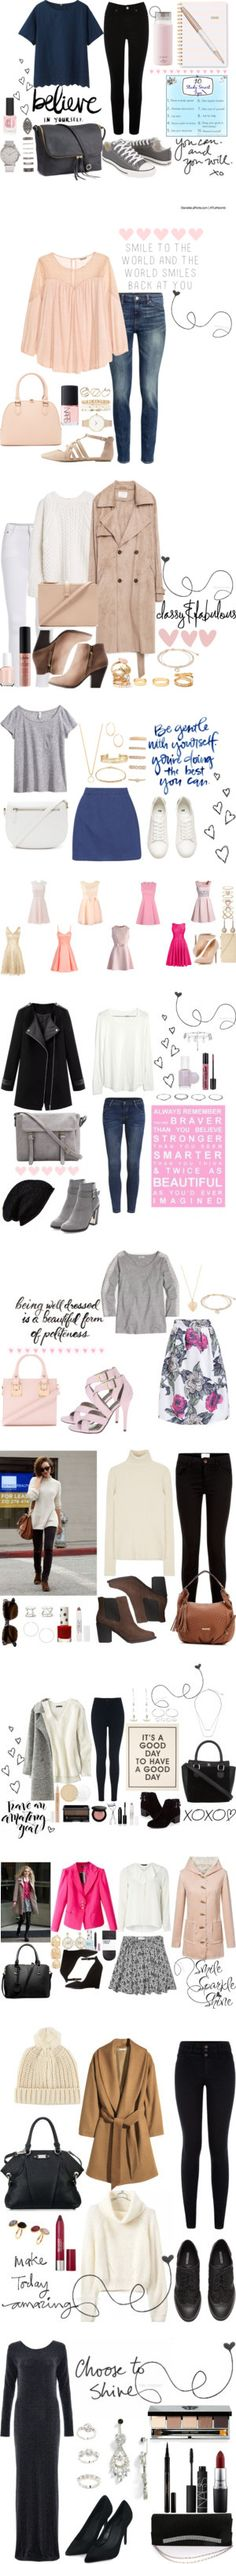 Amazing Styles for the Apple Body Shape by ladylikecharm on Polyvore featuring Oasis, Converse, Forever 21, H&M, Uniqlo, Kate Spade, Topshop, Sugar Paper, Swarovski and Prada